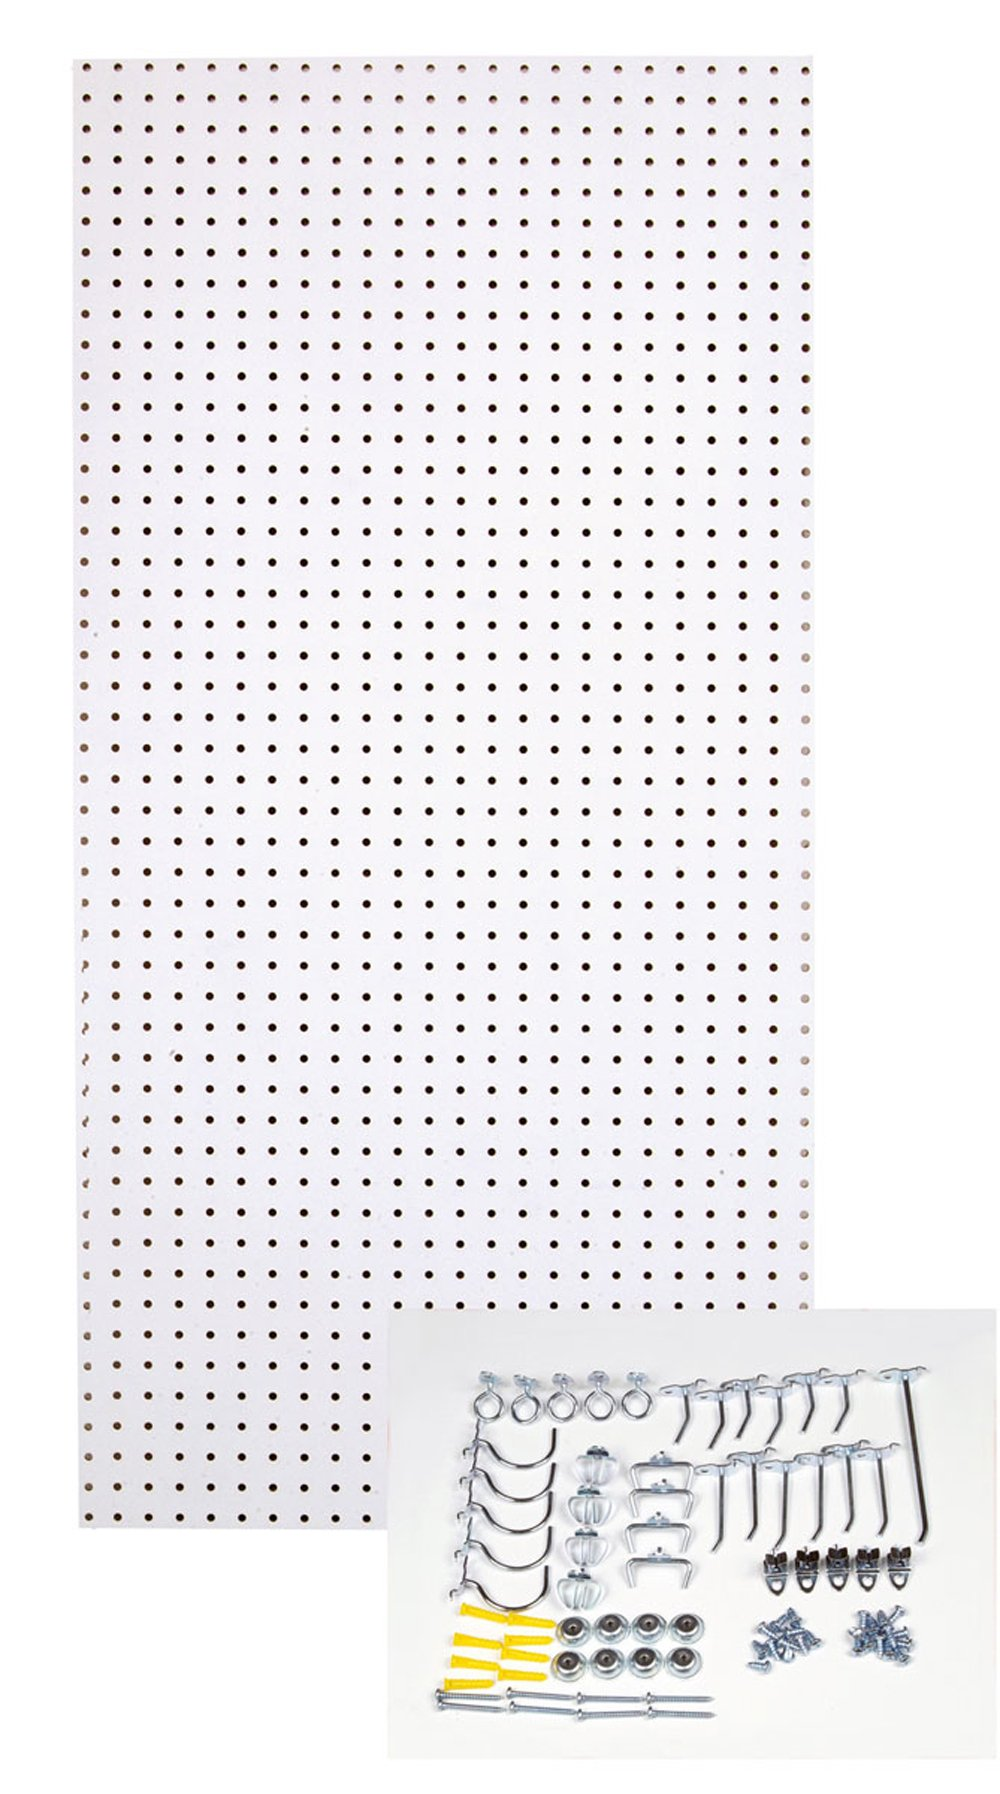 Triton Products TPB-36WH-Kit 24-Inch W x 48-Inch H Custom Painted Heavy Duty Tempered Round Hole Pegboards with Locking Hook Assortment, White